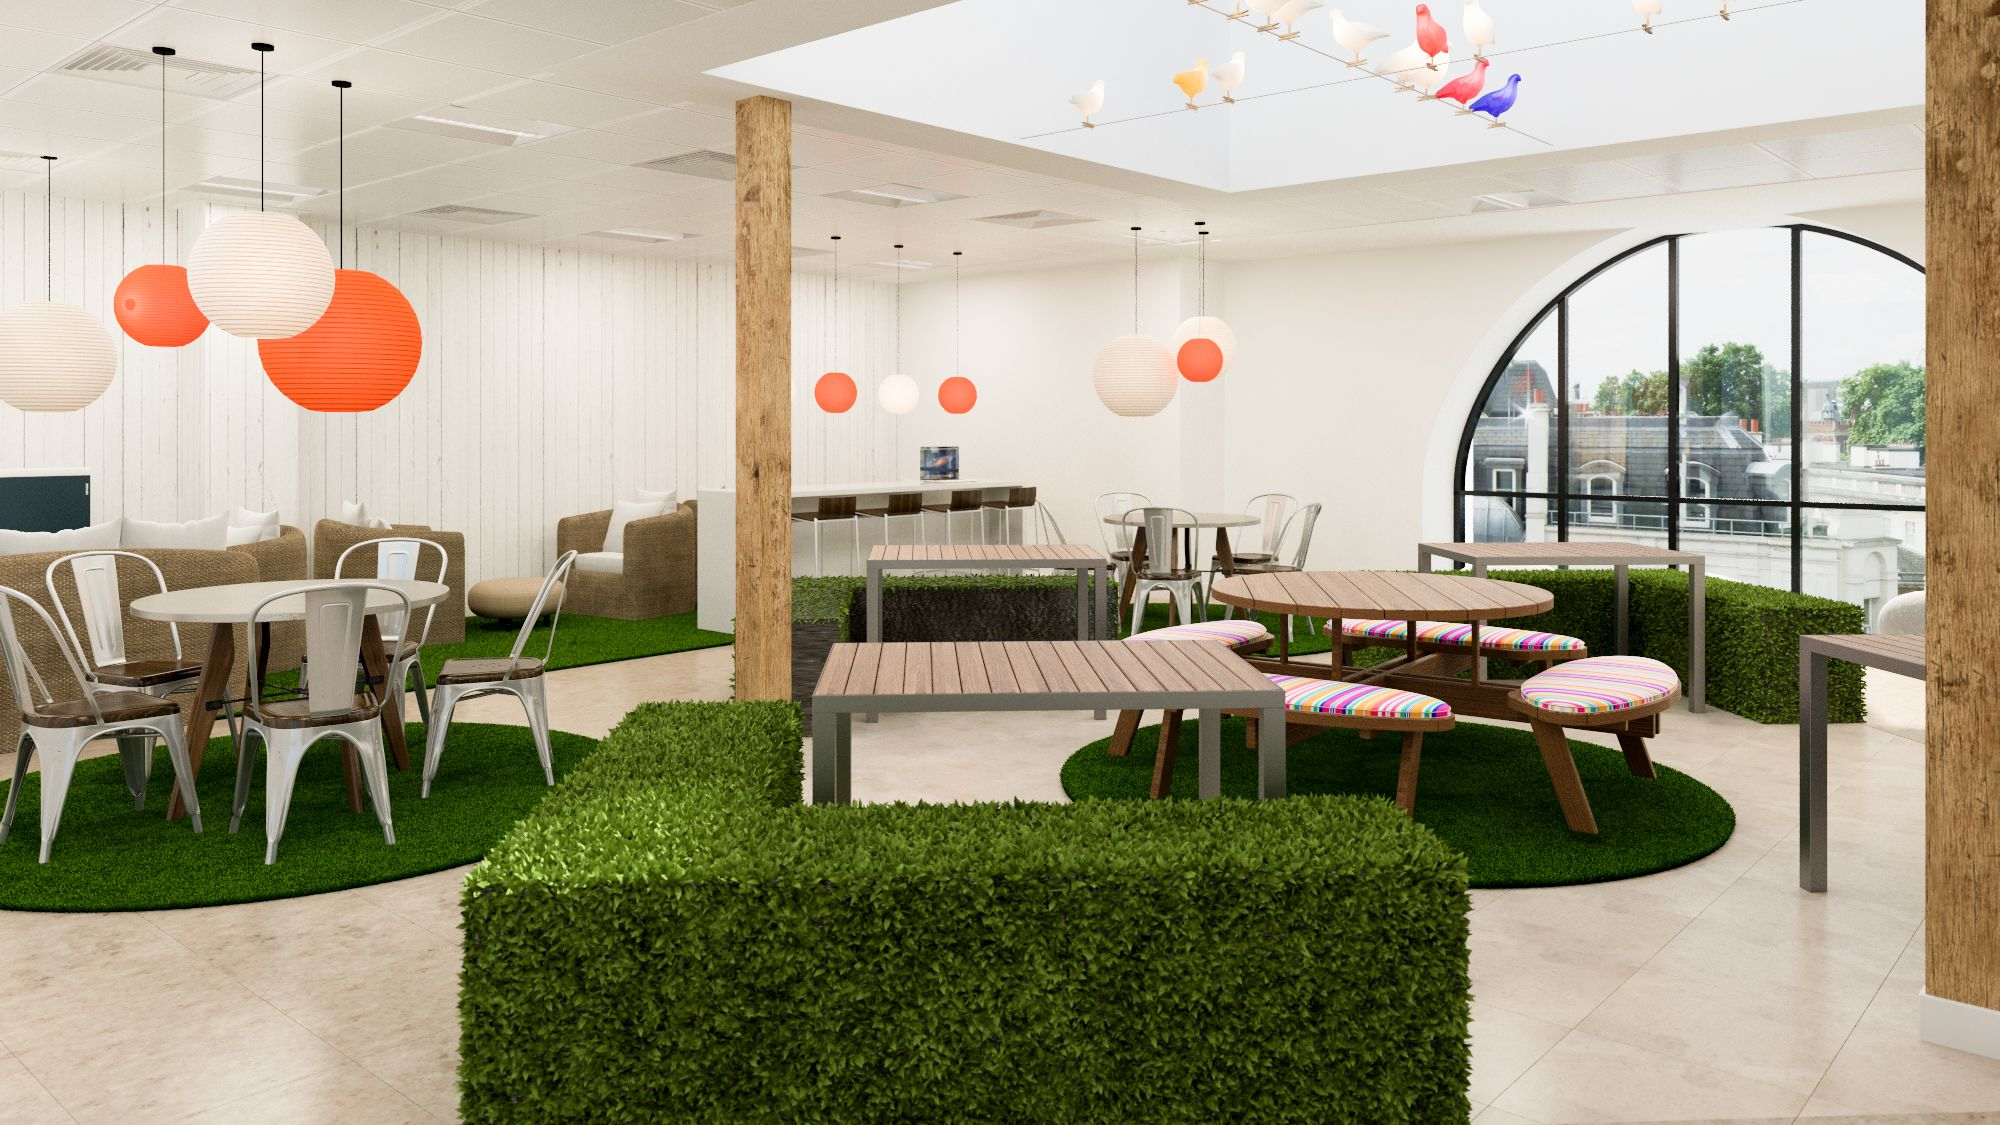 picnic office design. Office Design Visual For A London-based TV Production Company - Featuring Hedge Seating, Pigeon Lights, Picnic Tables And Games Area Pinterest